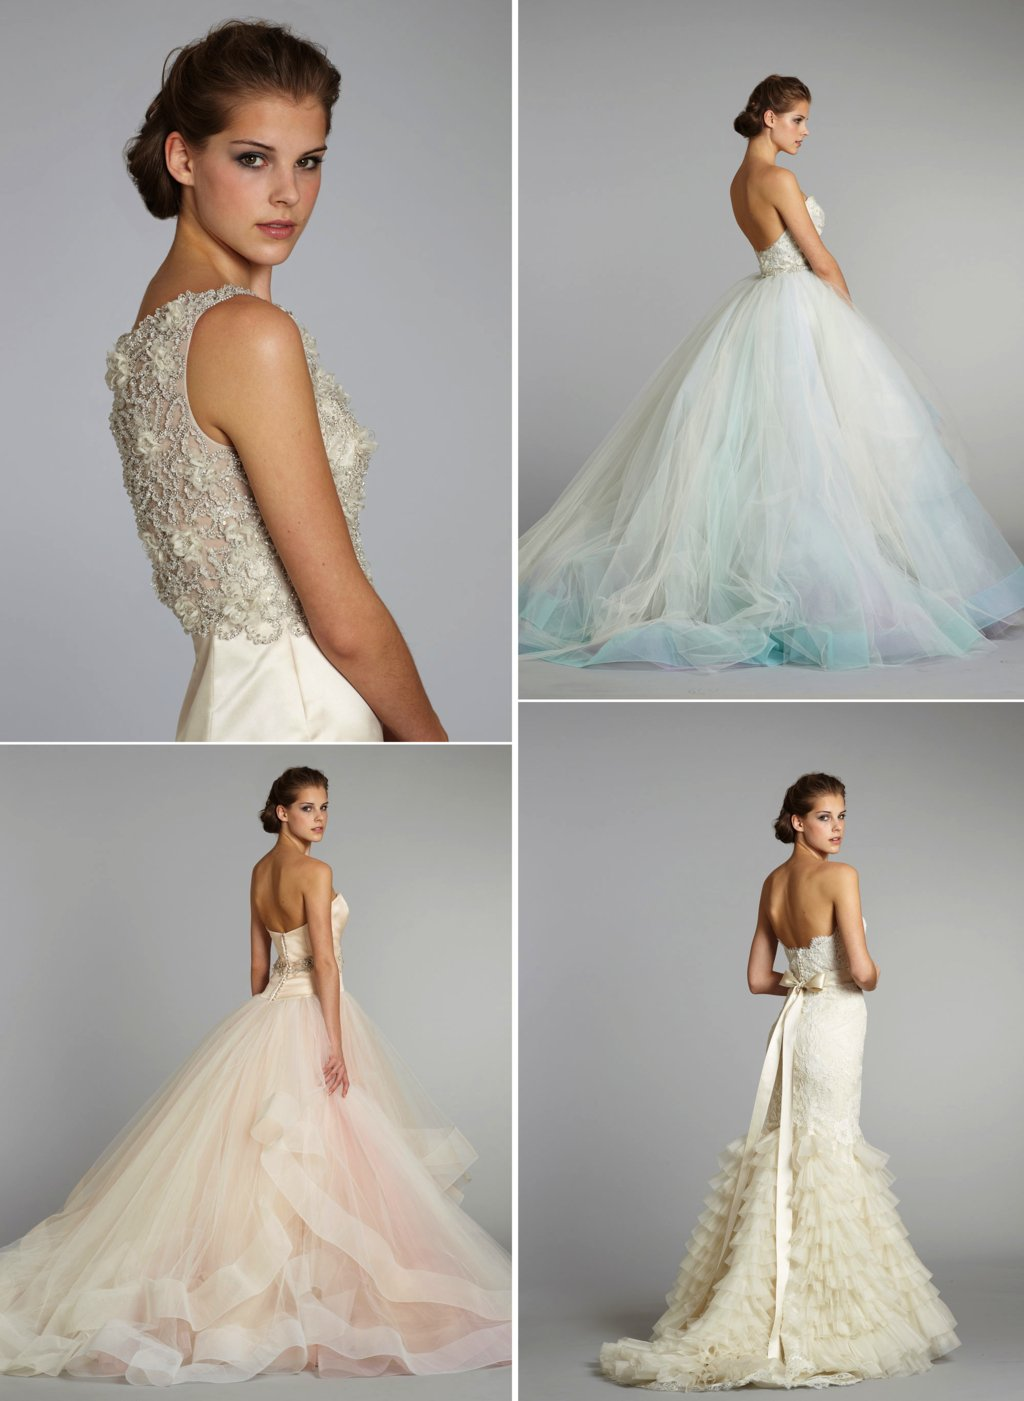 2012 wedding dresses lazaro bridal gowns 2 fall 2012 wedding dresses lazaro bridal gowns 2 junglespirit Image collections